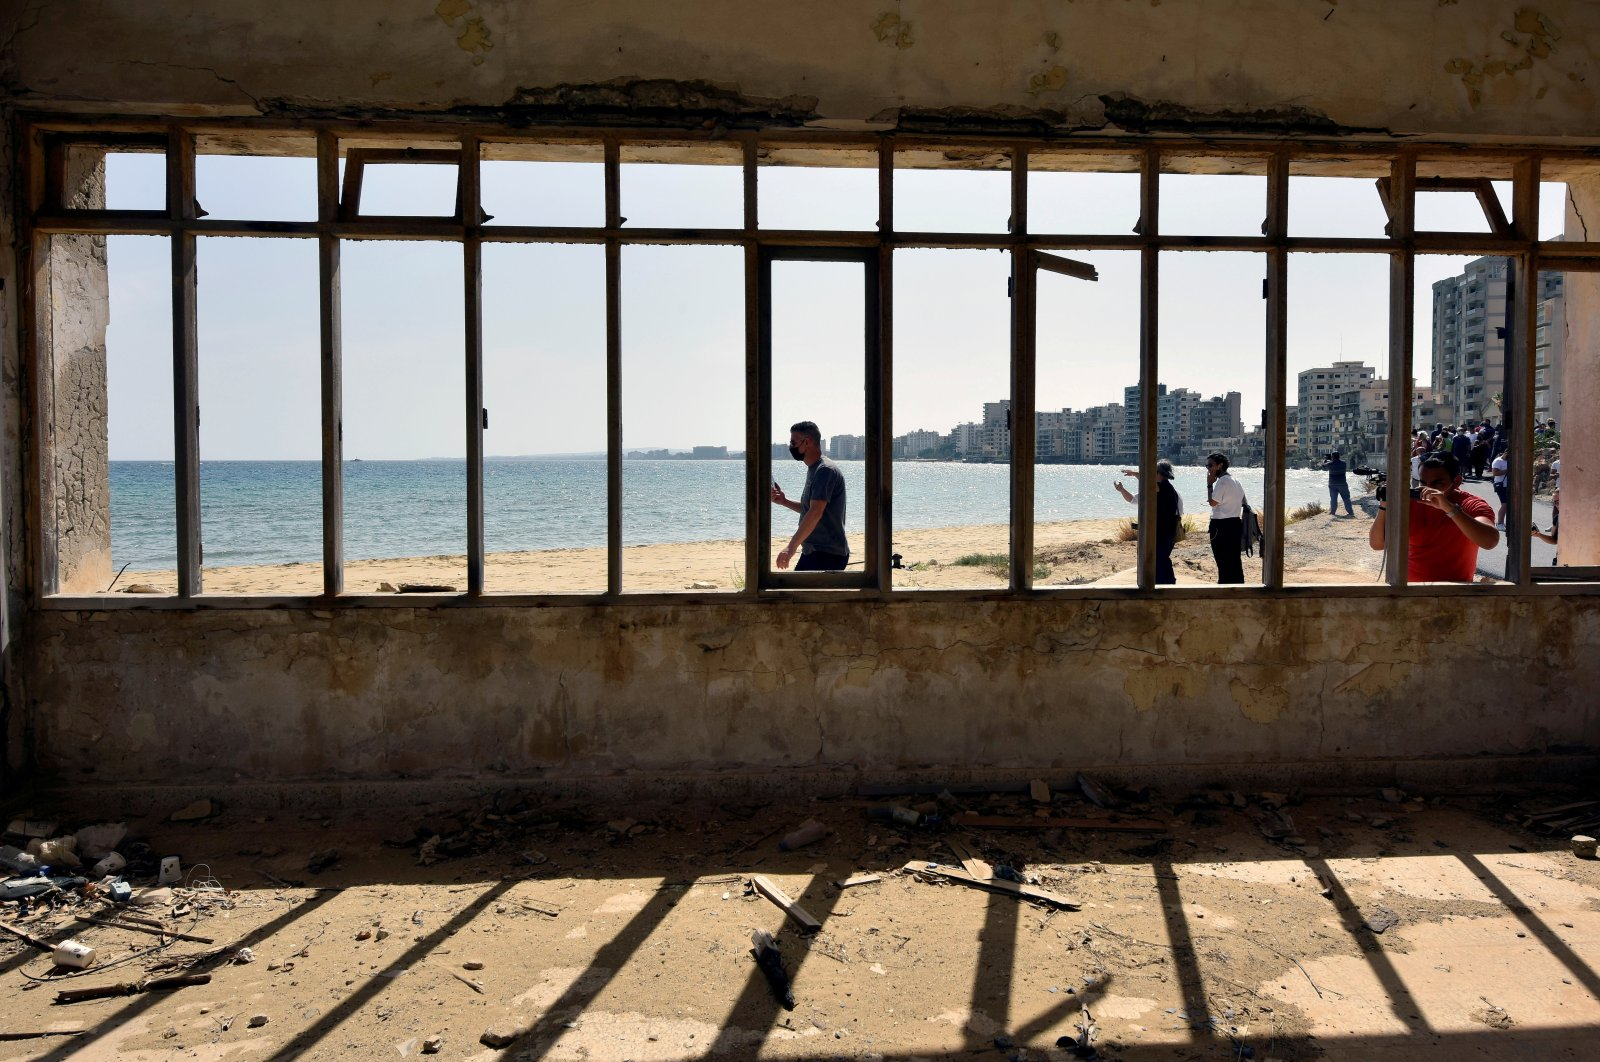 People walk on a beach inside an area fenced off by the Turkish military since 1974 in the abandoned coastal area of Varosha, a suburb of the town of Famagusta in the Turkish Republic of Northern Cyprus (TRNC), Oct. 8, 2020. (Reuters)